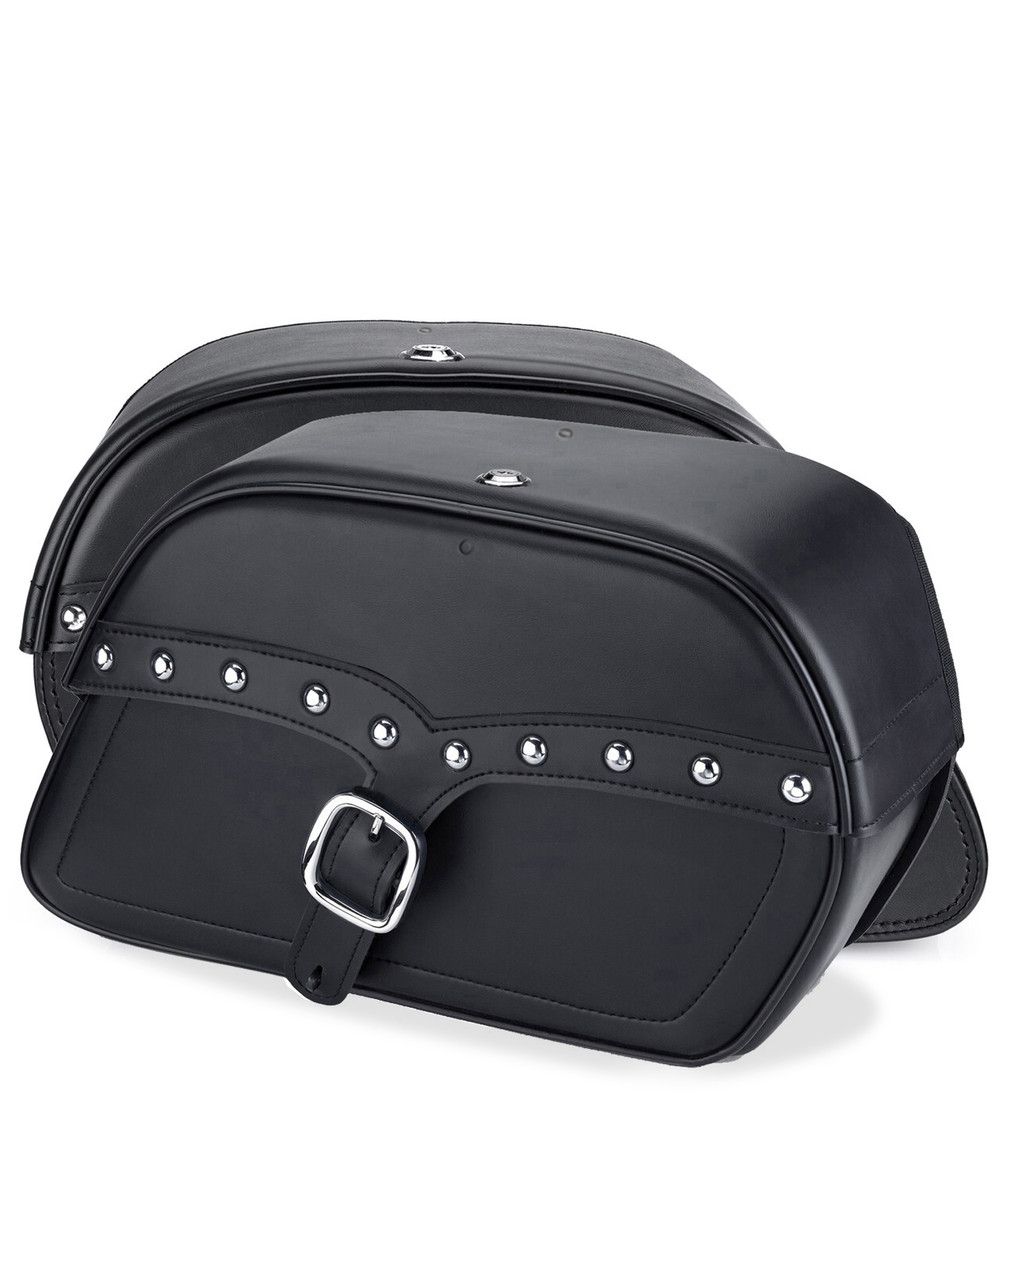 Viking Shock Cutout SS Slanted Studded Large Motorcycle Saddlebags For Harley Dyna Low Rider FXDL Both Bags View